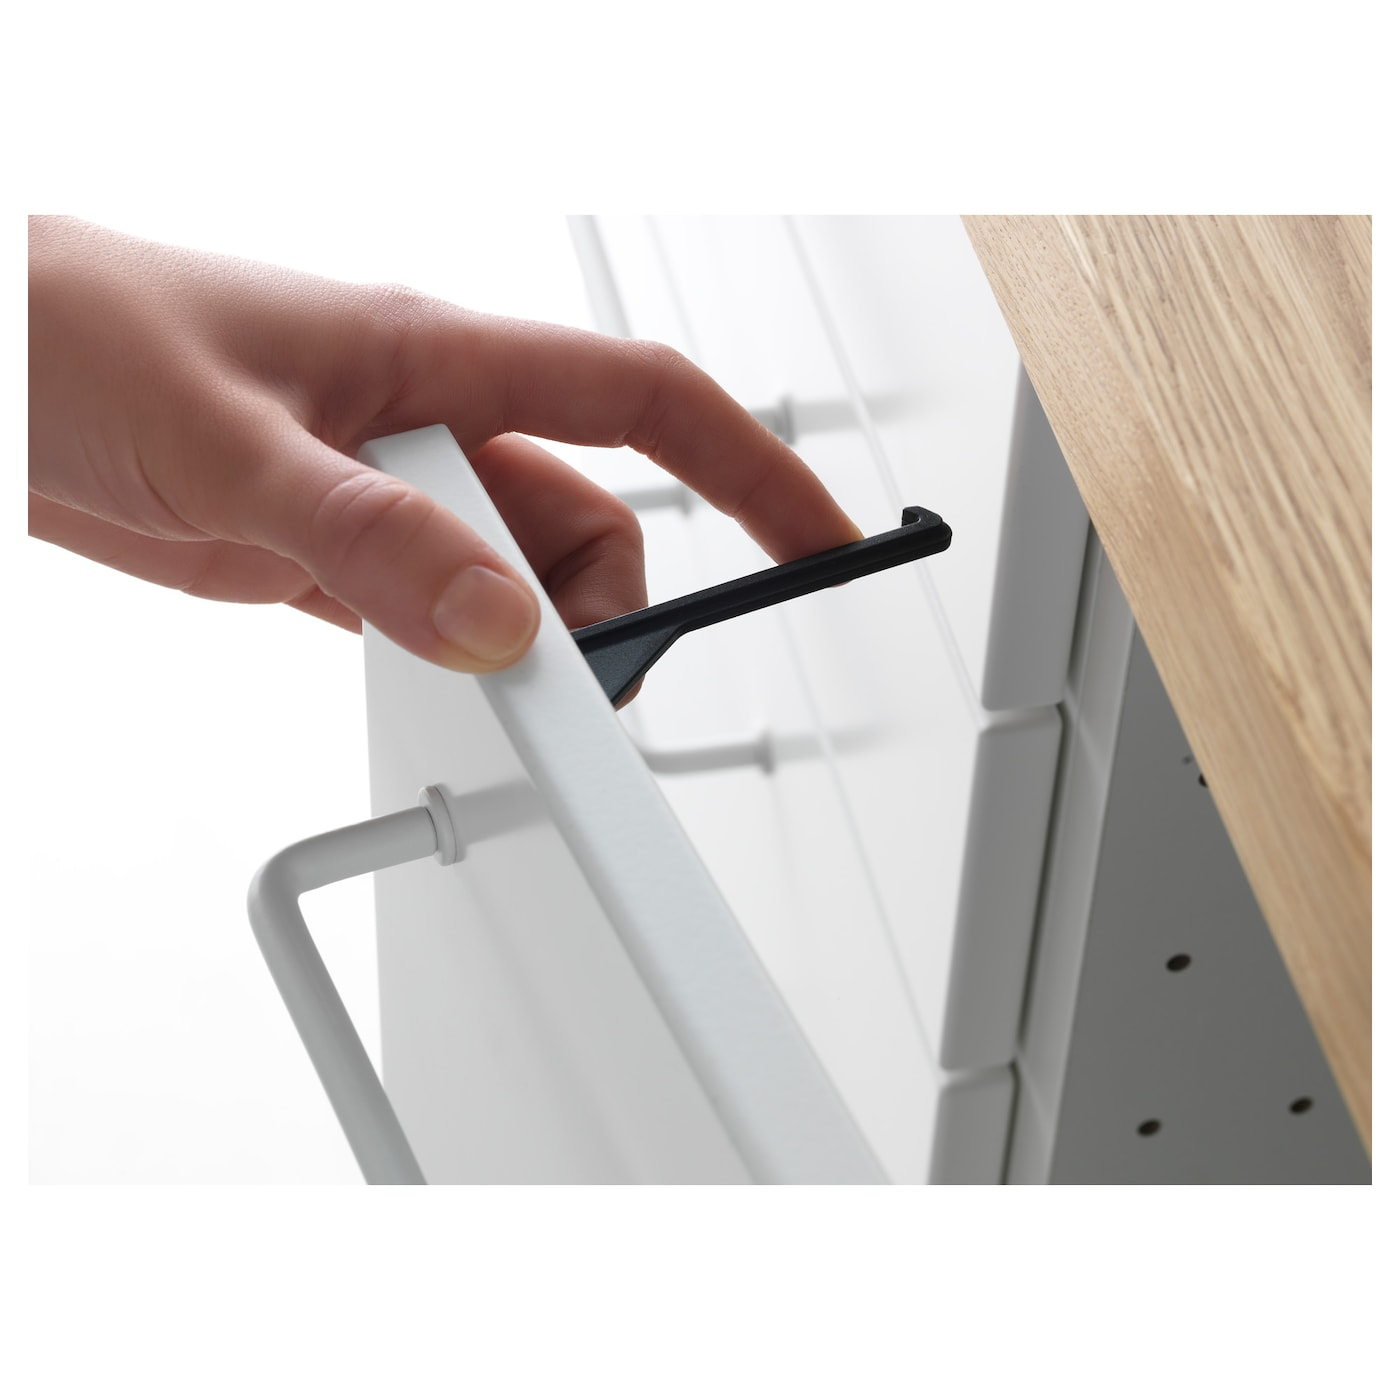 IKEA PATRULL drawer/cabinet catch